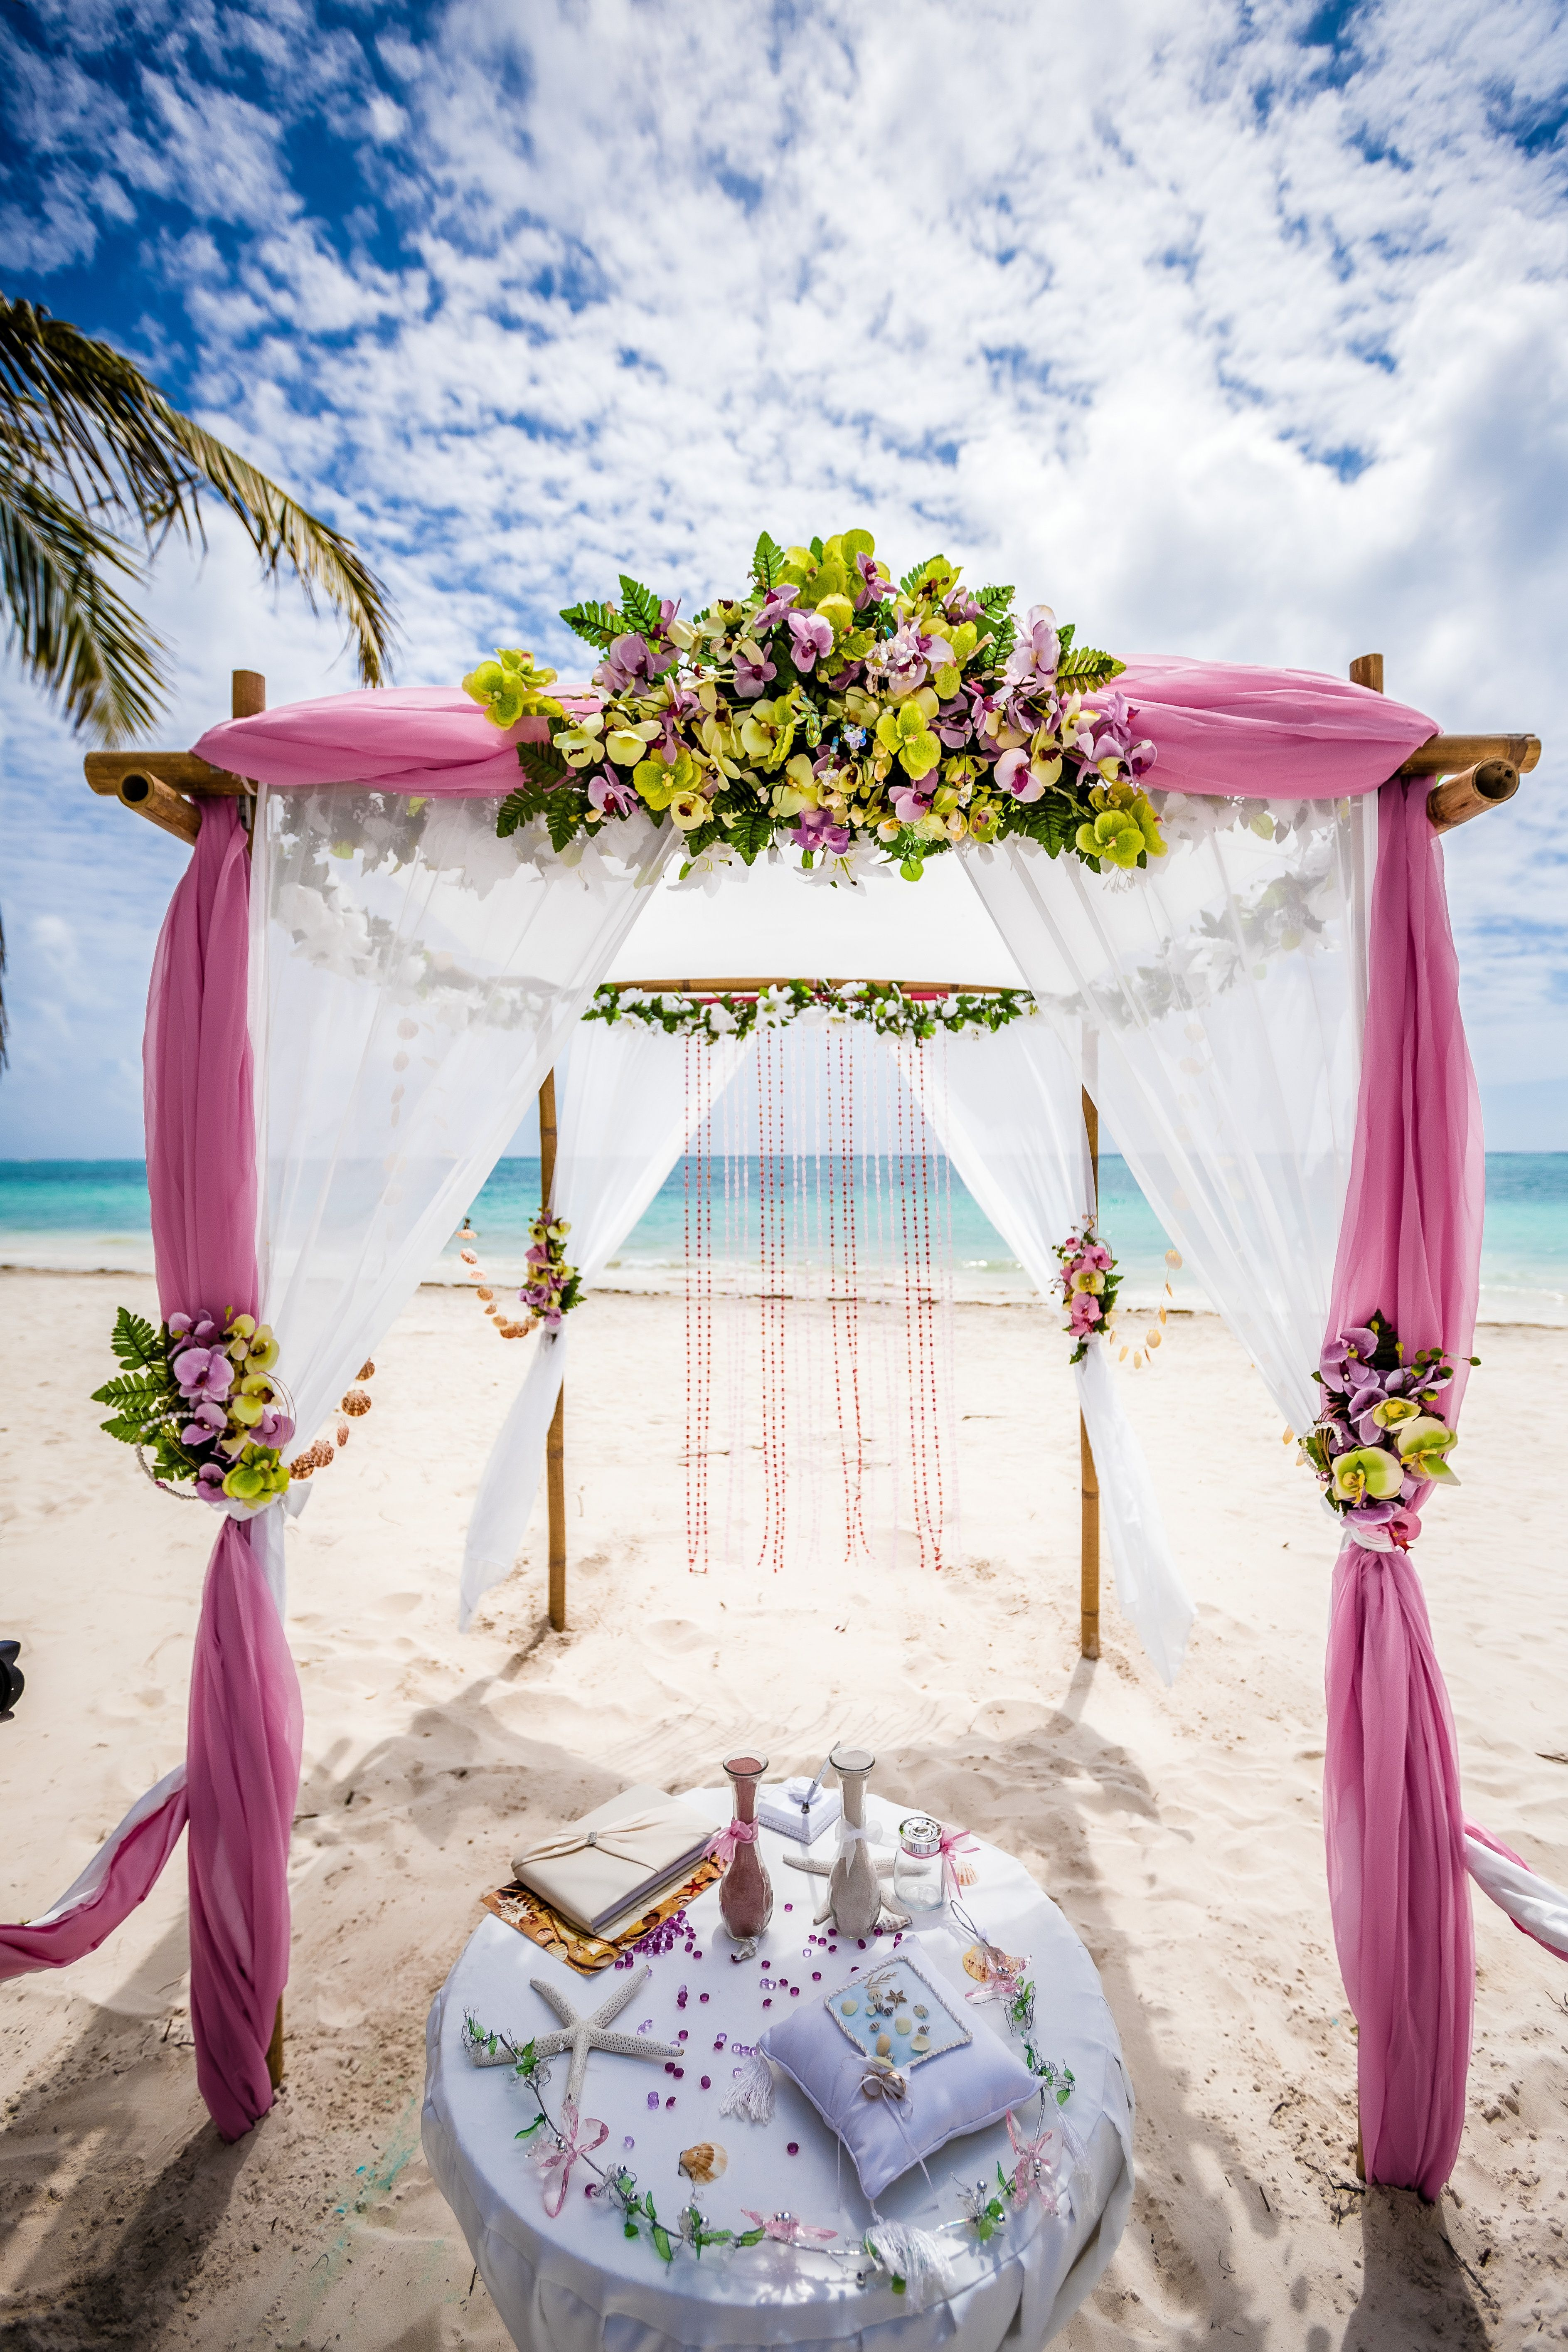 Absolutely Epic Photo Of Bamboo Gazebo And Decorated Wedding Table